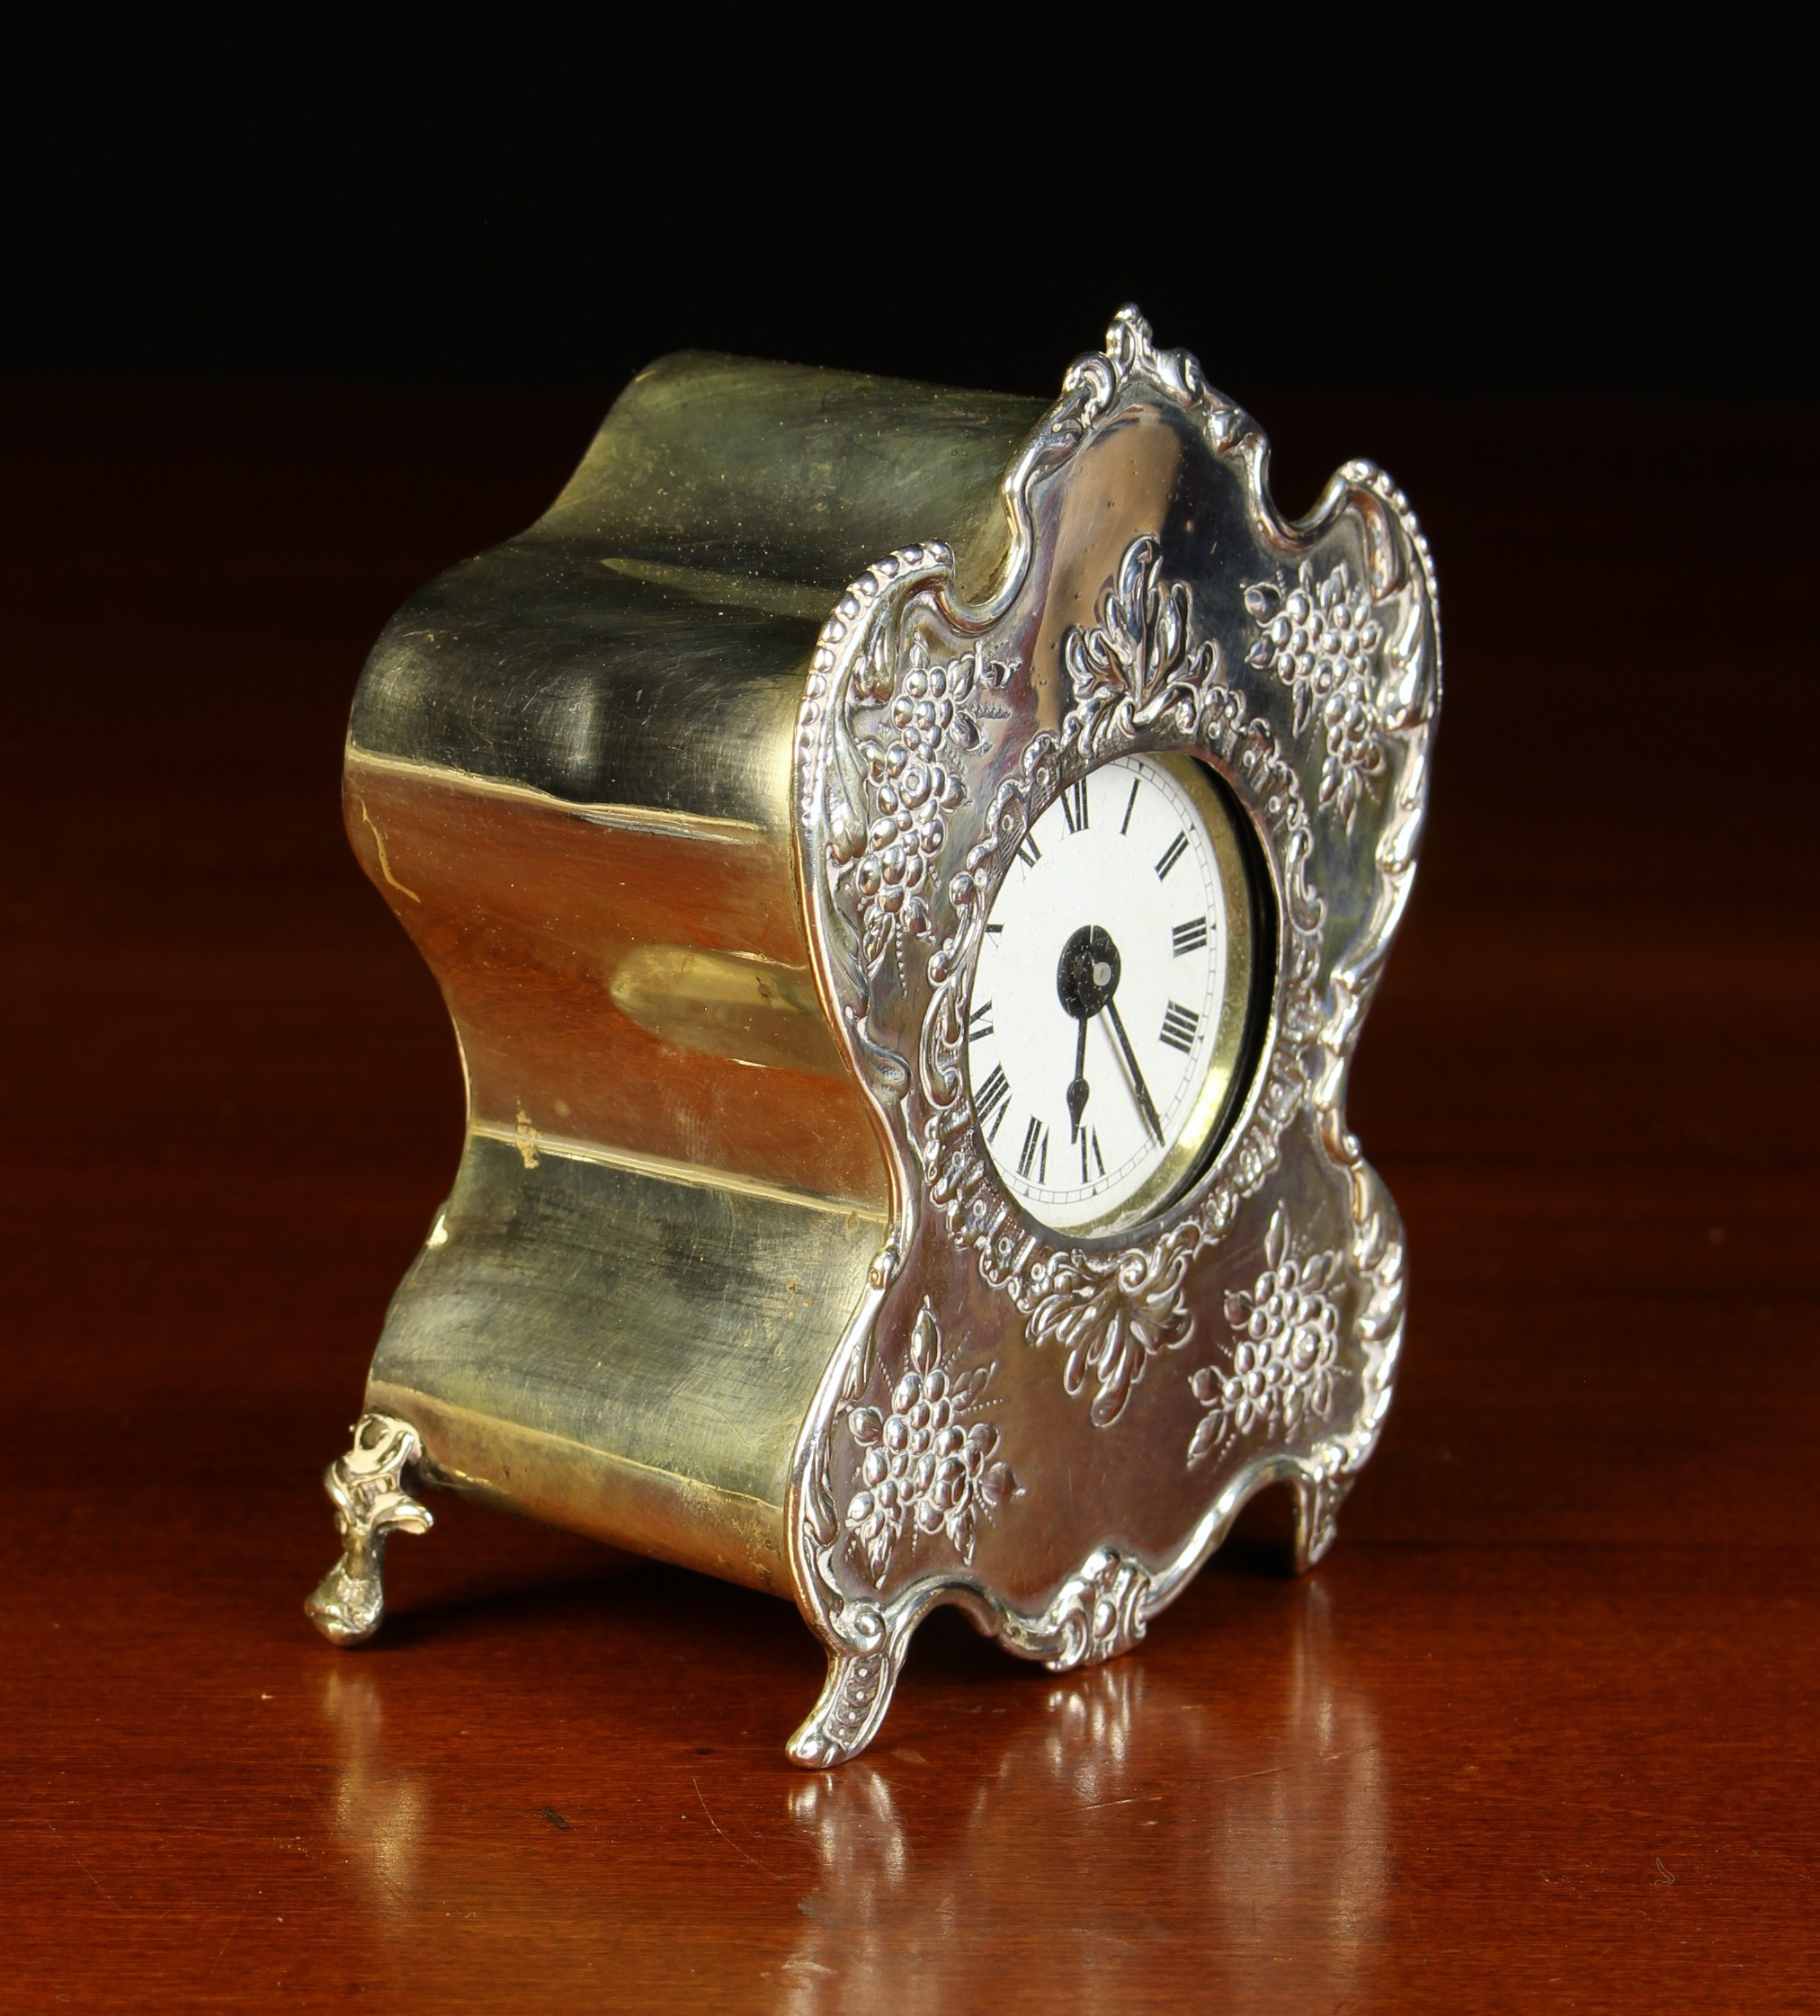 A Small Victorian Silver Cased Boudoir Clock/Watch Holder by William Comyns & Sons, - Image 2 of 5